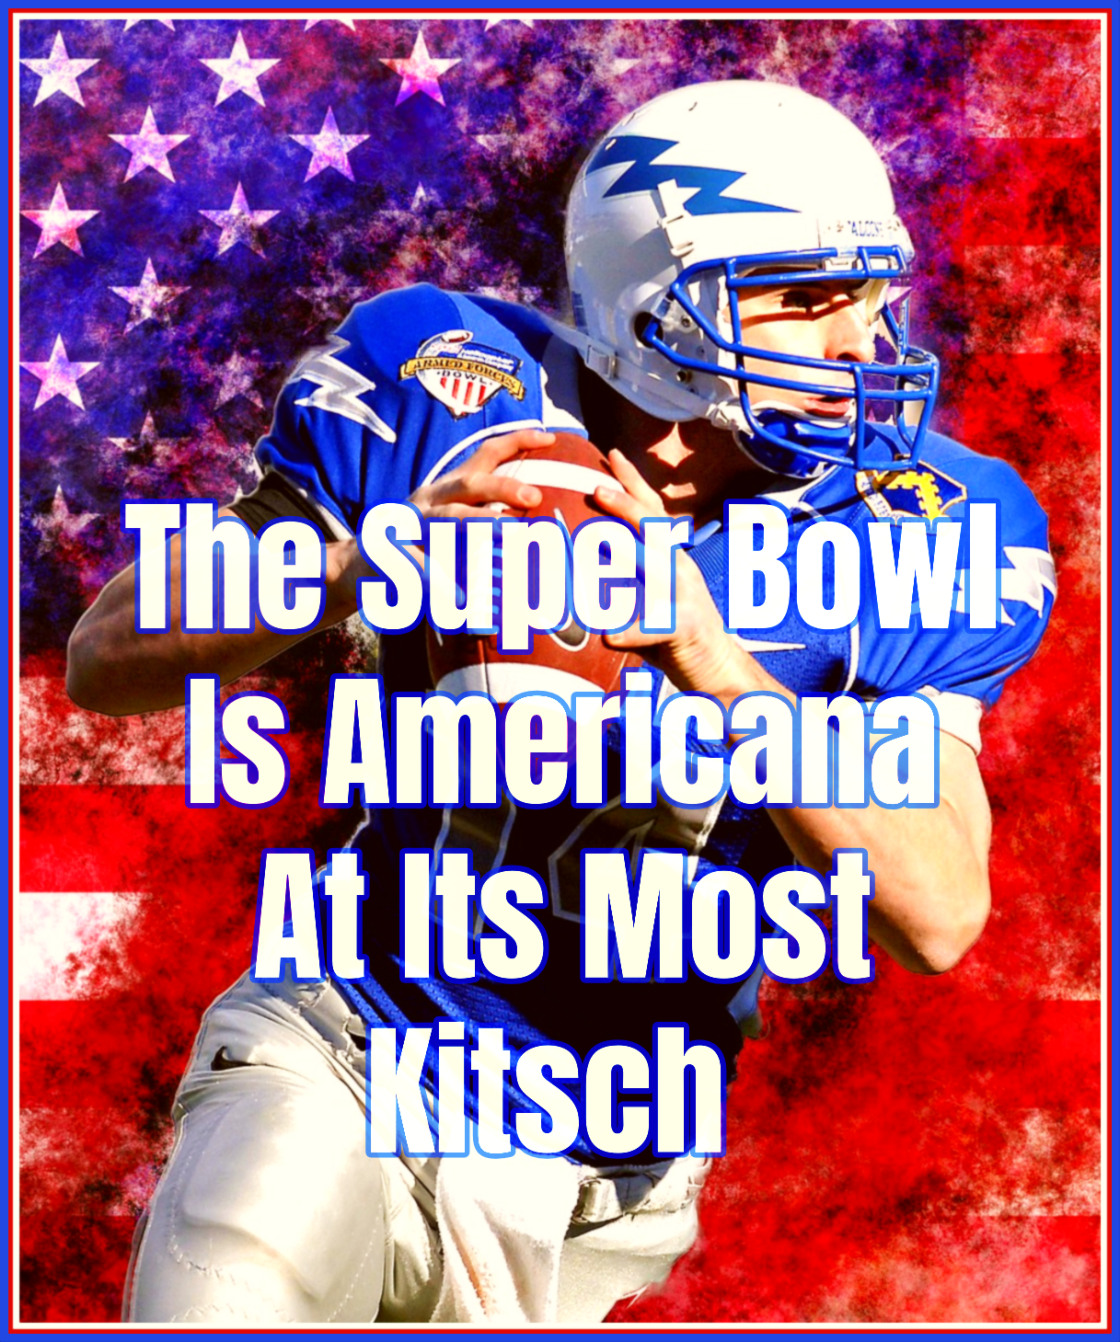 bekitschig blog The Super Bowl is Americana at its most kitsch and fun.